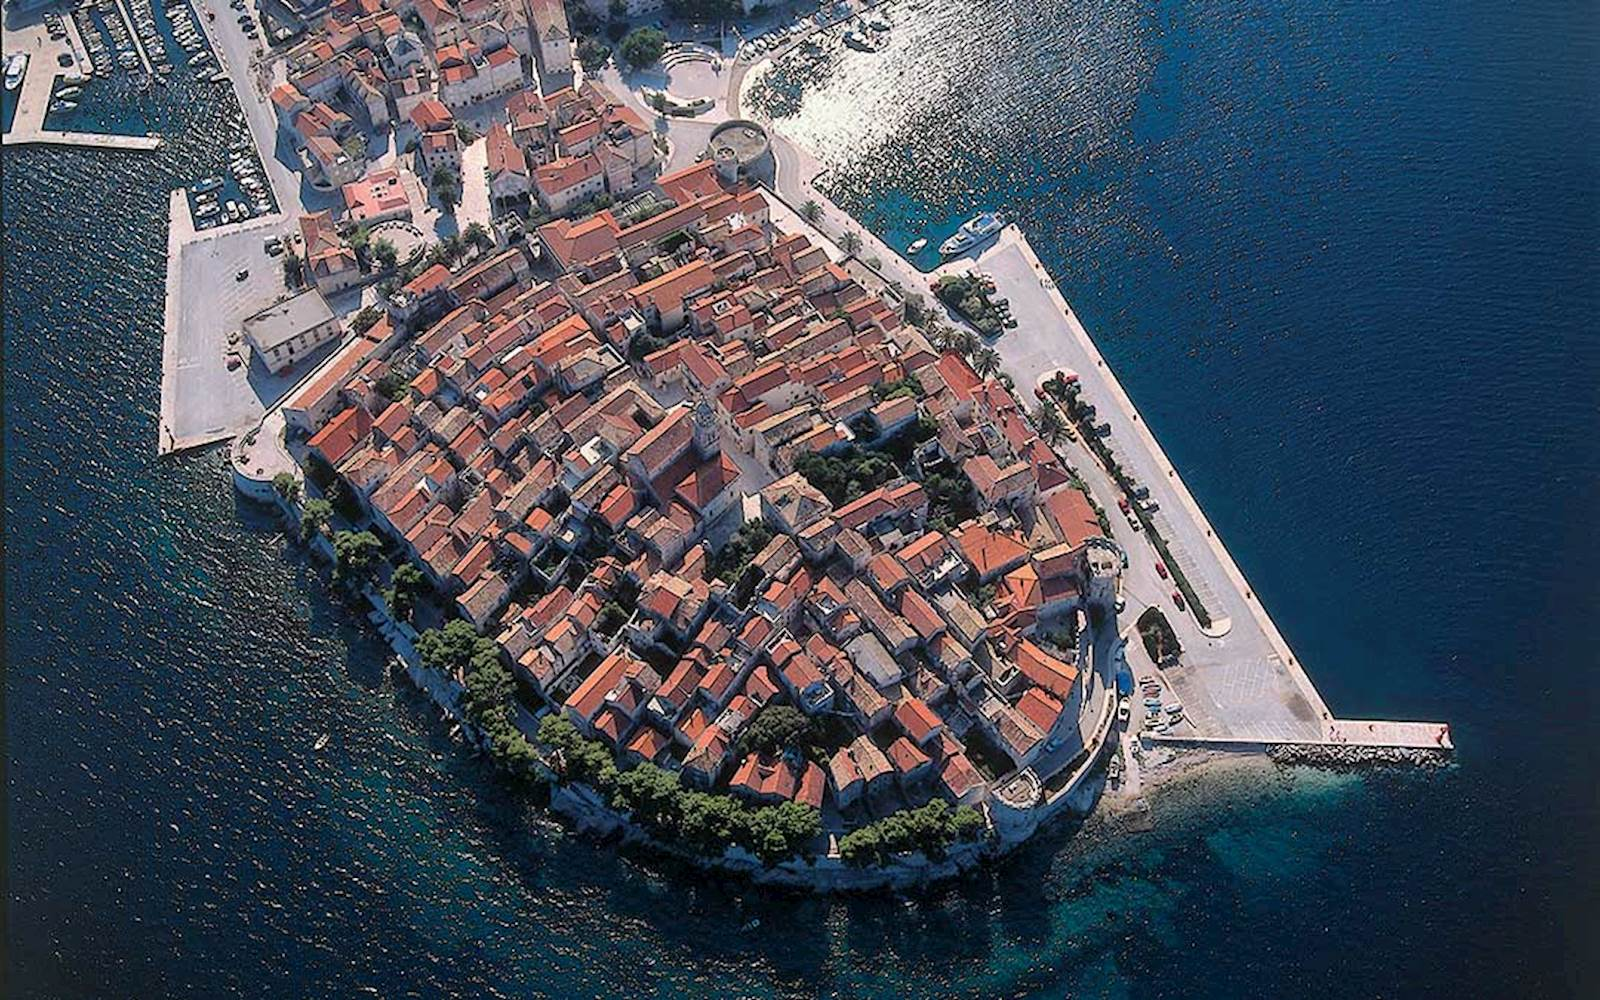 -images-excursions-korcula-boat-excursion-a-korcula-citywall-airview.jpg